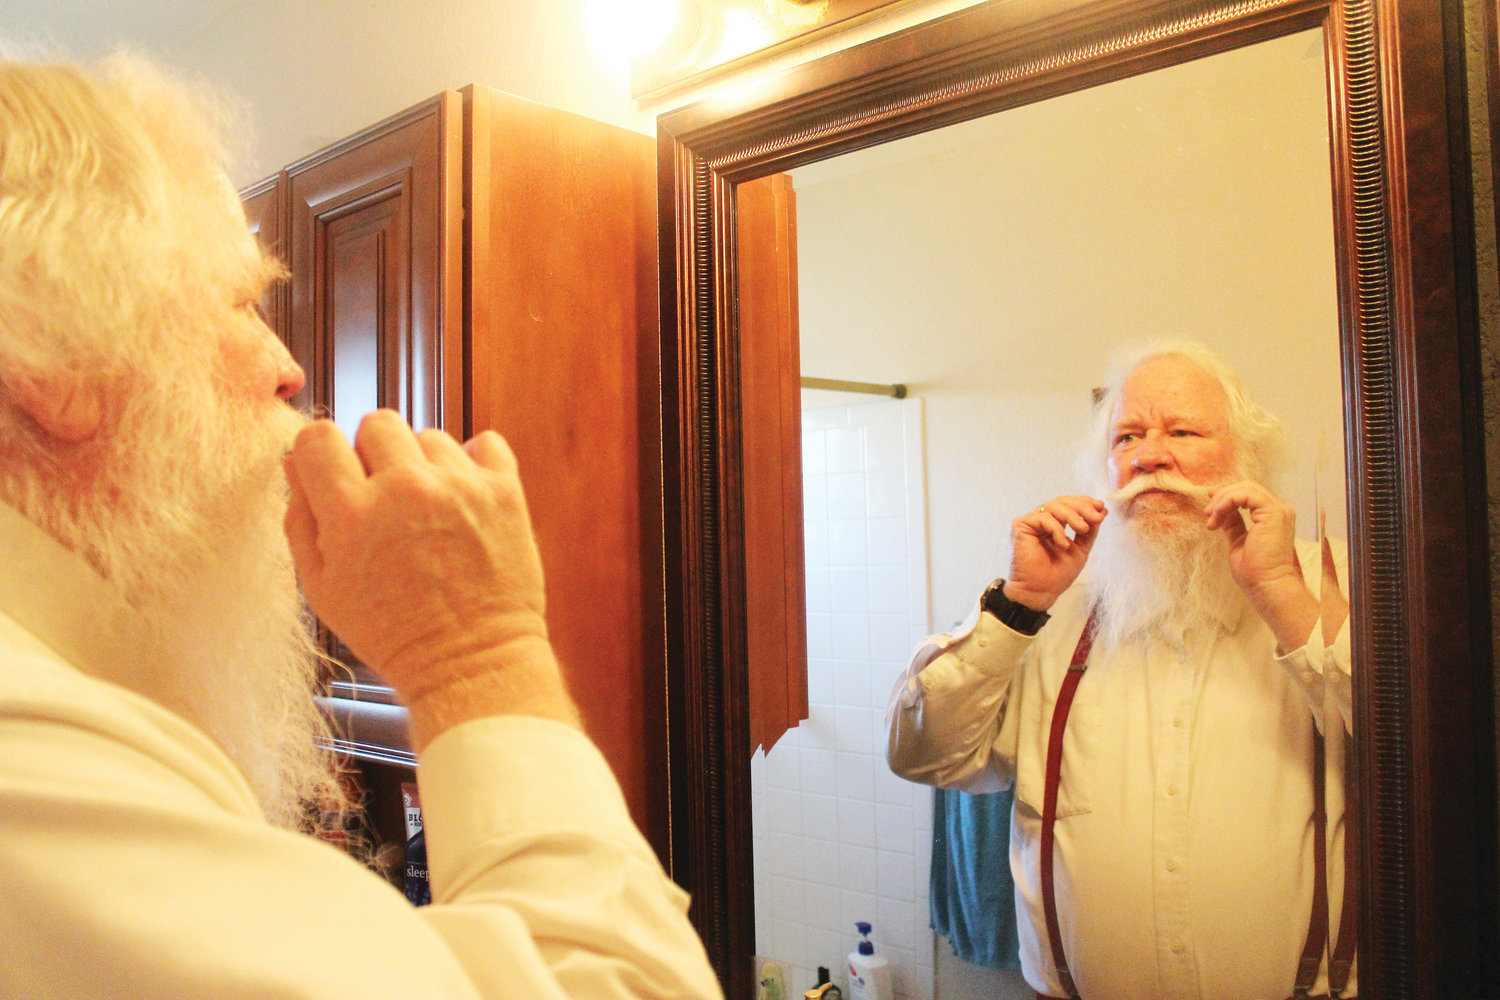 Bryan Austin, 60, primps his mustache before a Nov. 9 Christmas party hosted by a local Mothers of Preschoolers group. It takes about 30 minutes for Austin to sculpt his beard and mustache to look like Santa's.